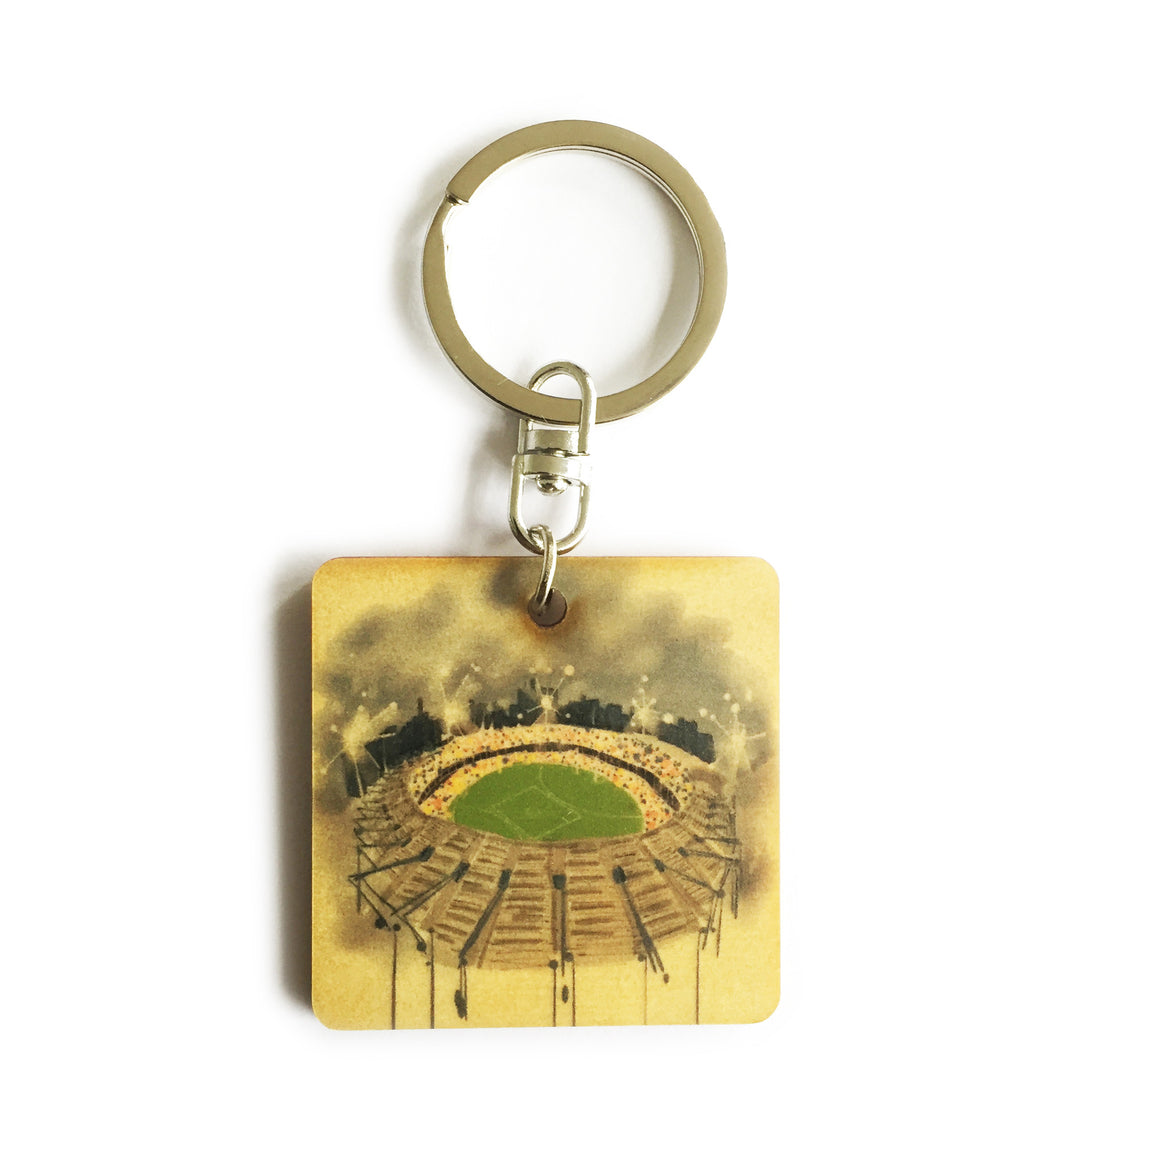 Keyring - Timber keyring with MCG print